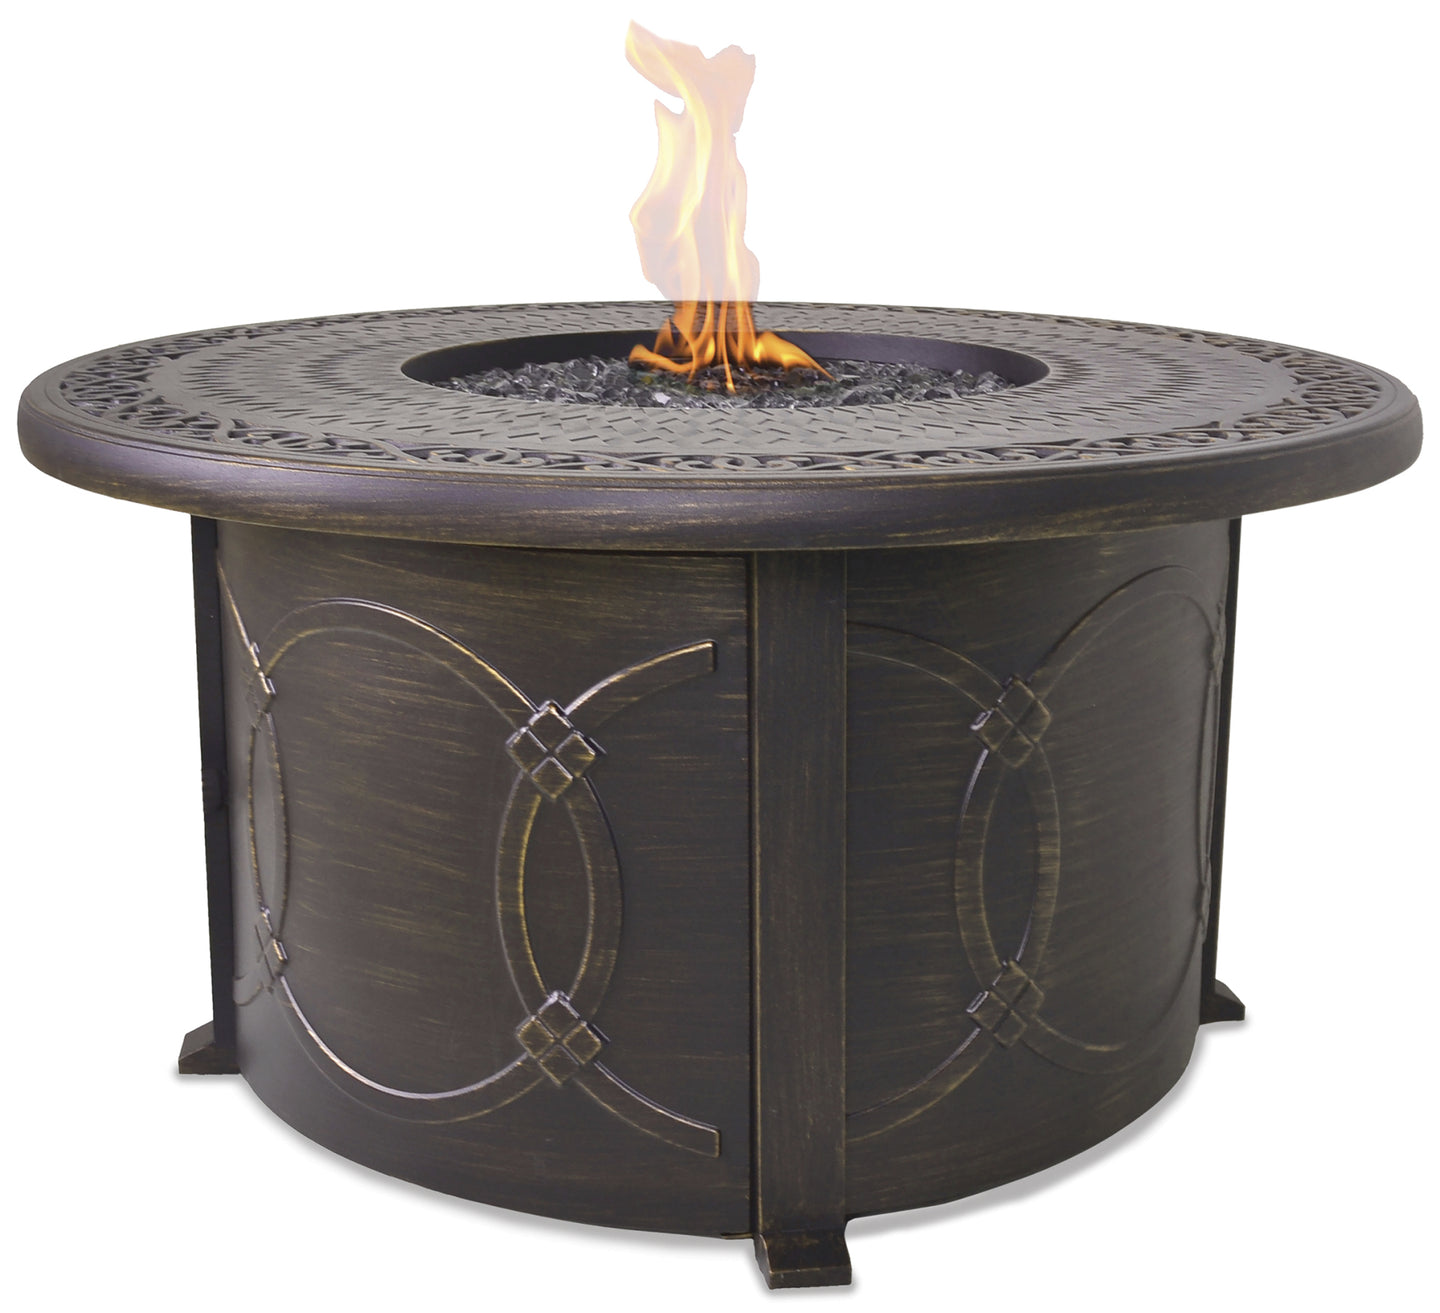 On Sale Now Round Outdoor Propane Fire Pits Endless Summer GAD1390SP!